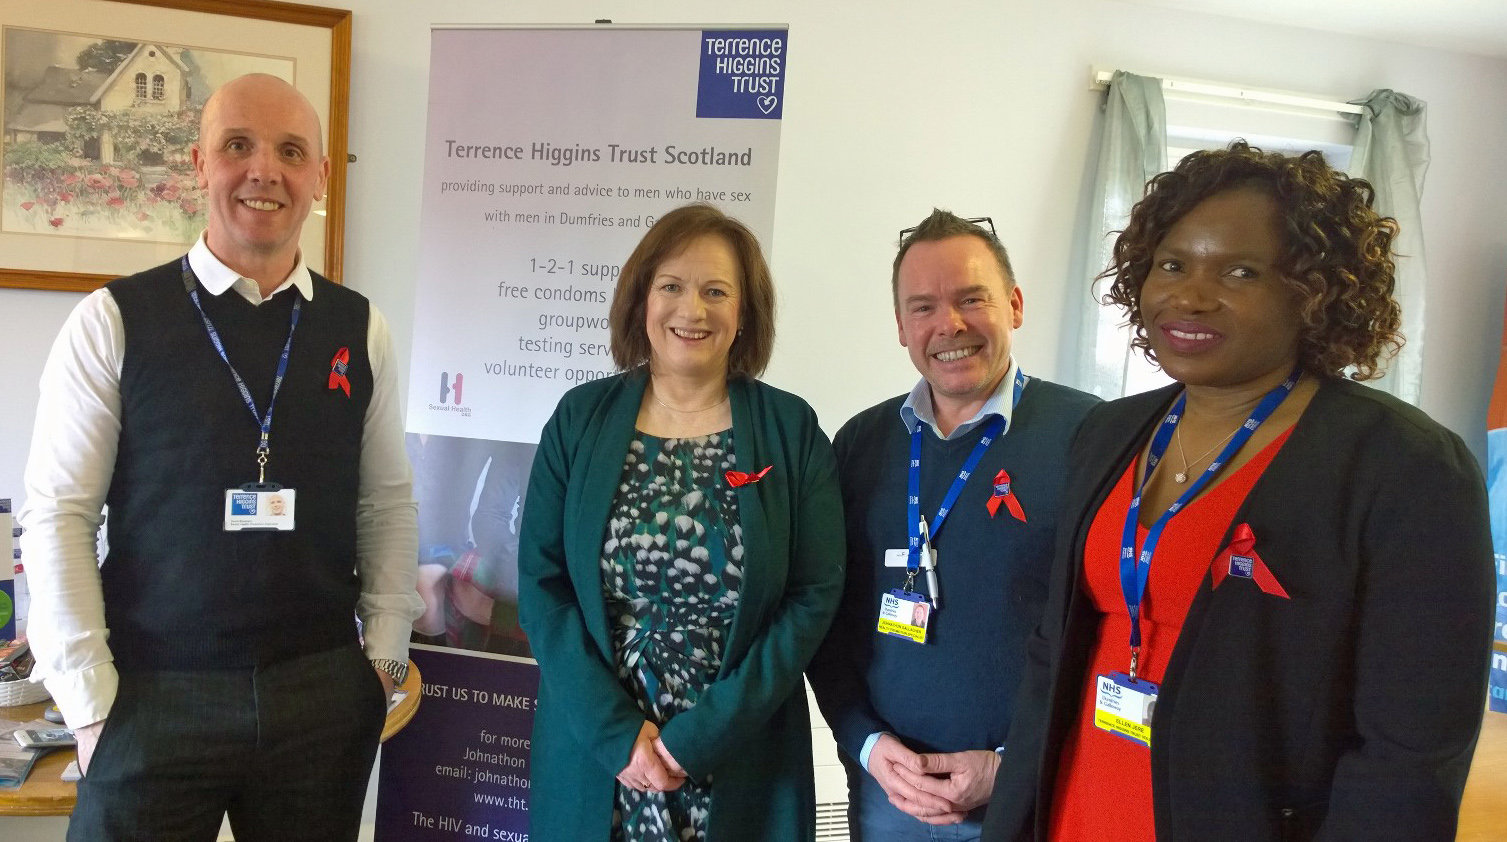 Joan_McAlpine_meets_Terrence_Higgins_Trust_Dumfries_staff.jpg